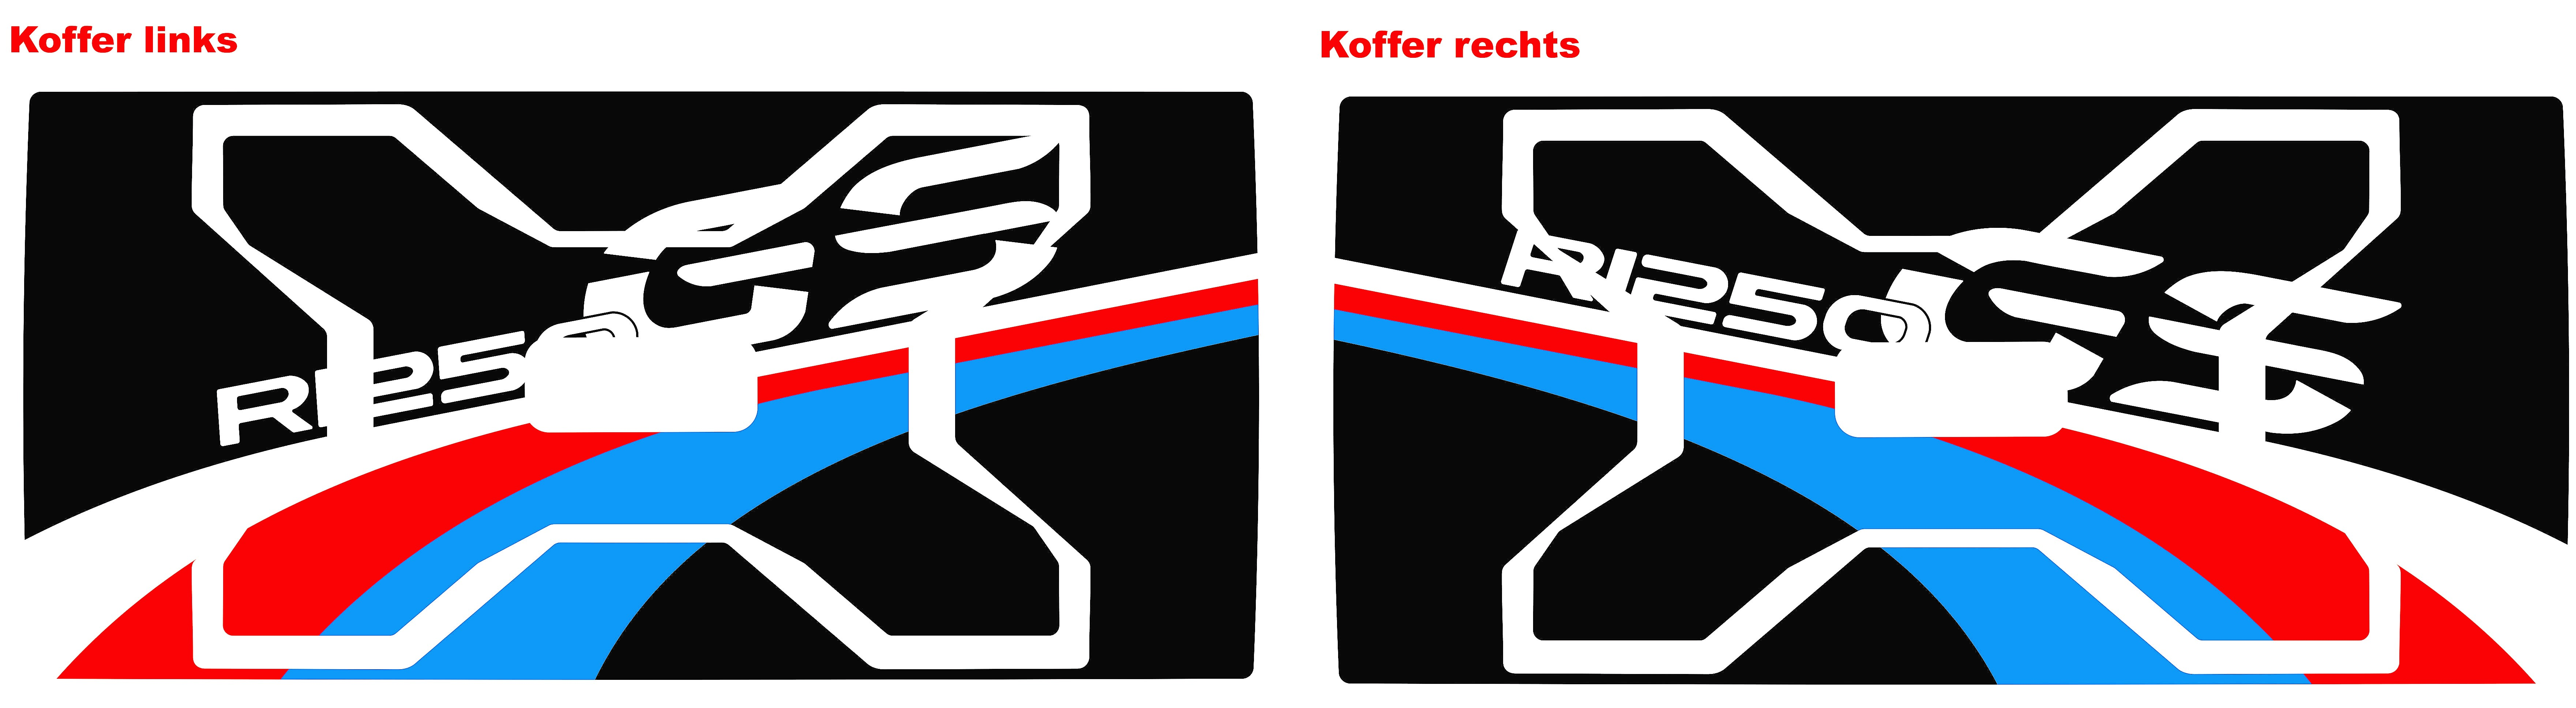 Preview: Aufkleber-Dekor-Set Koffer R 1200 & 1250 GS (LC) Motorsport HP